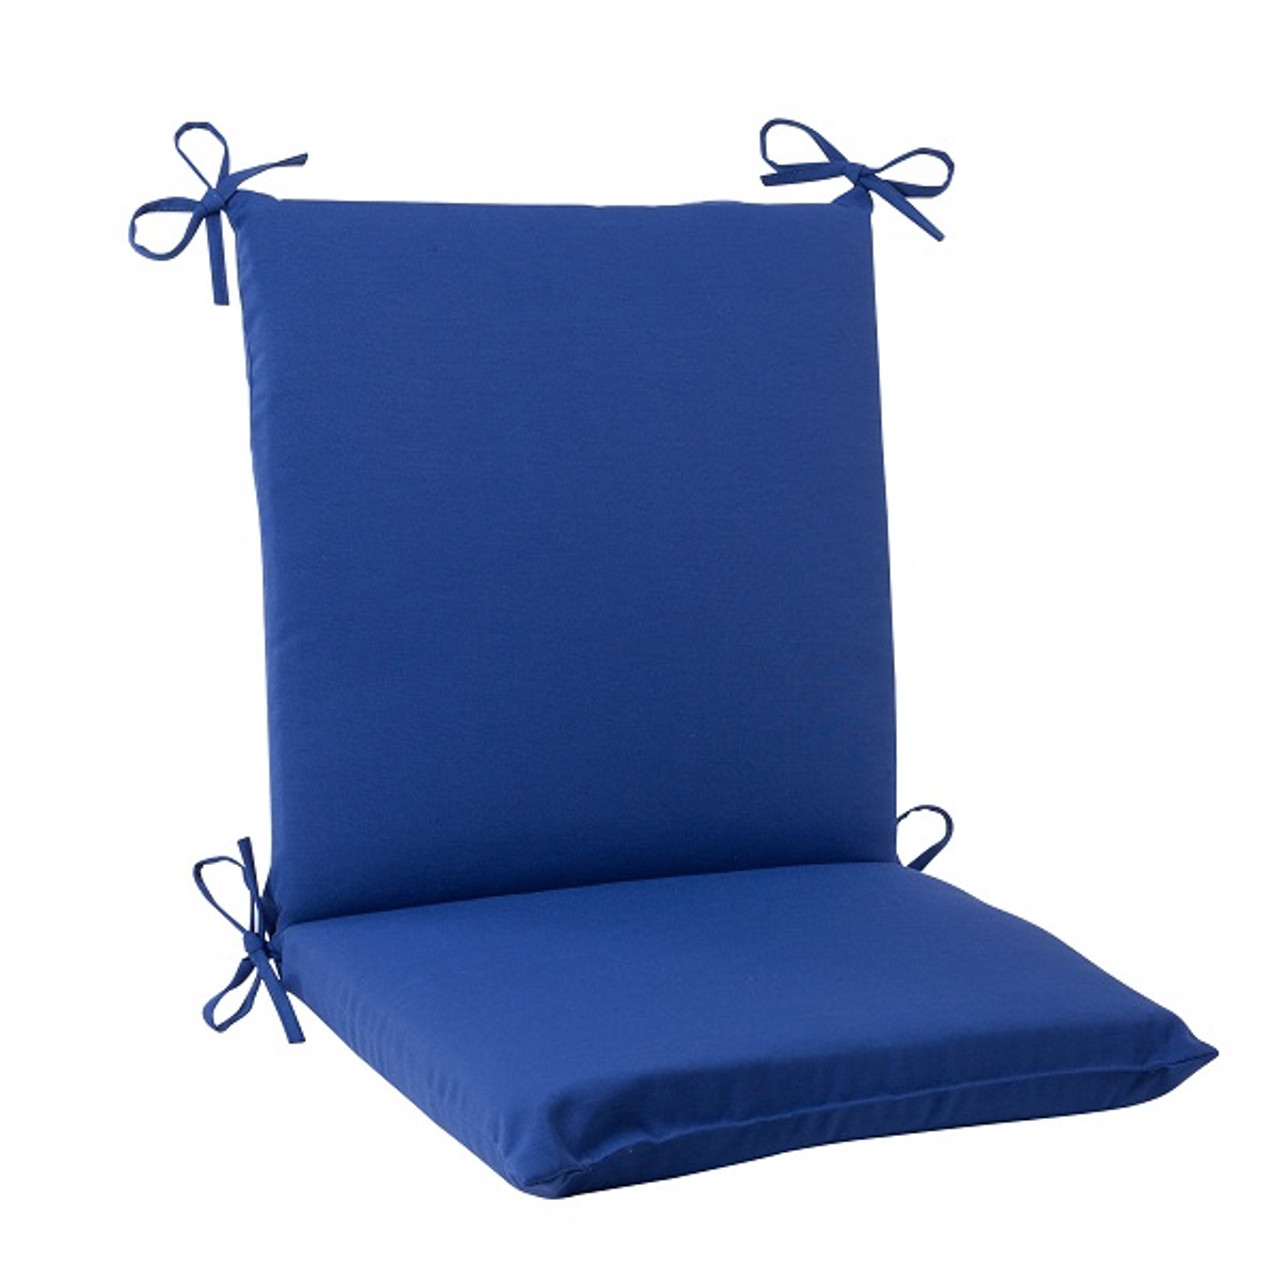 36 5 navy blue solid outdoor patio square edged chair cushion